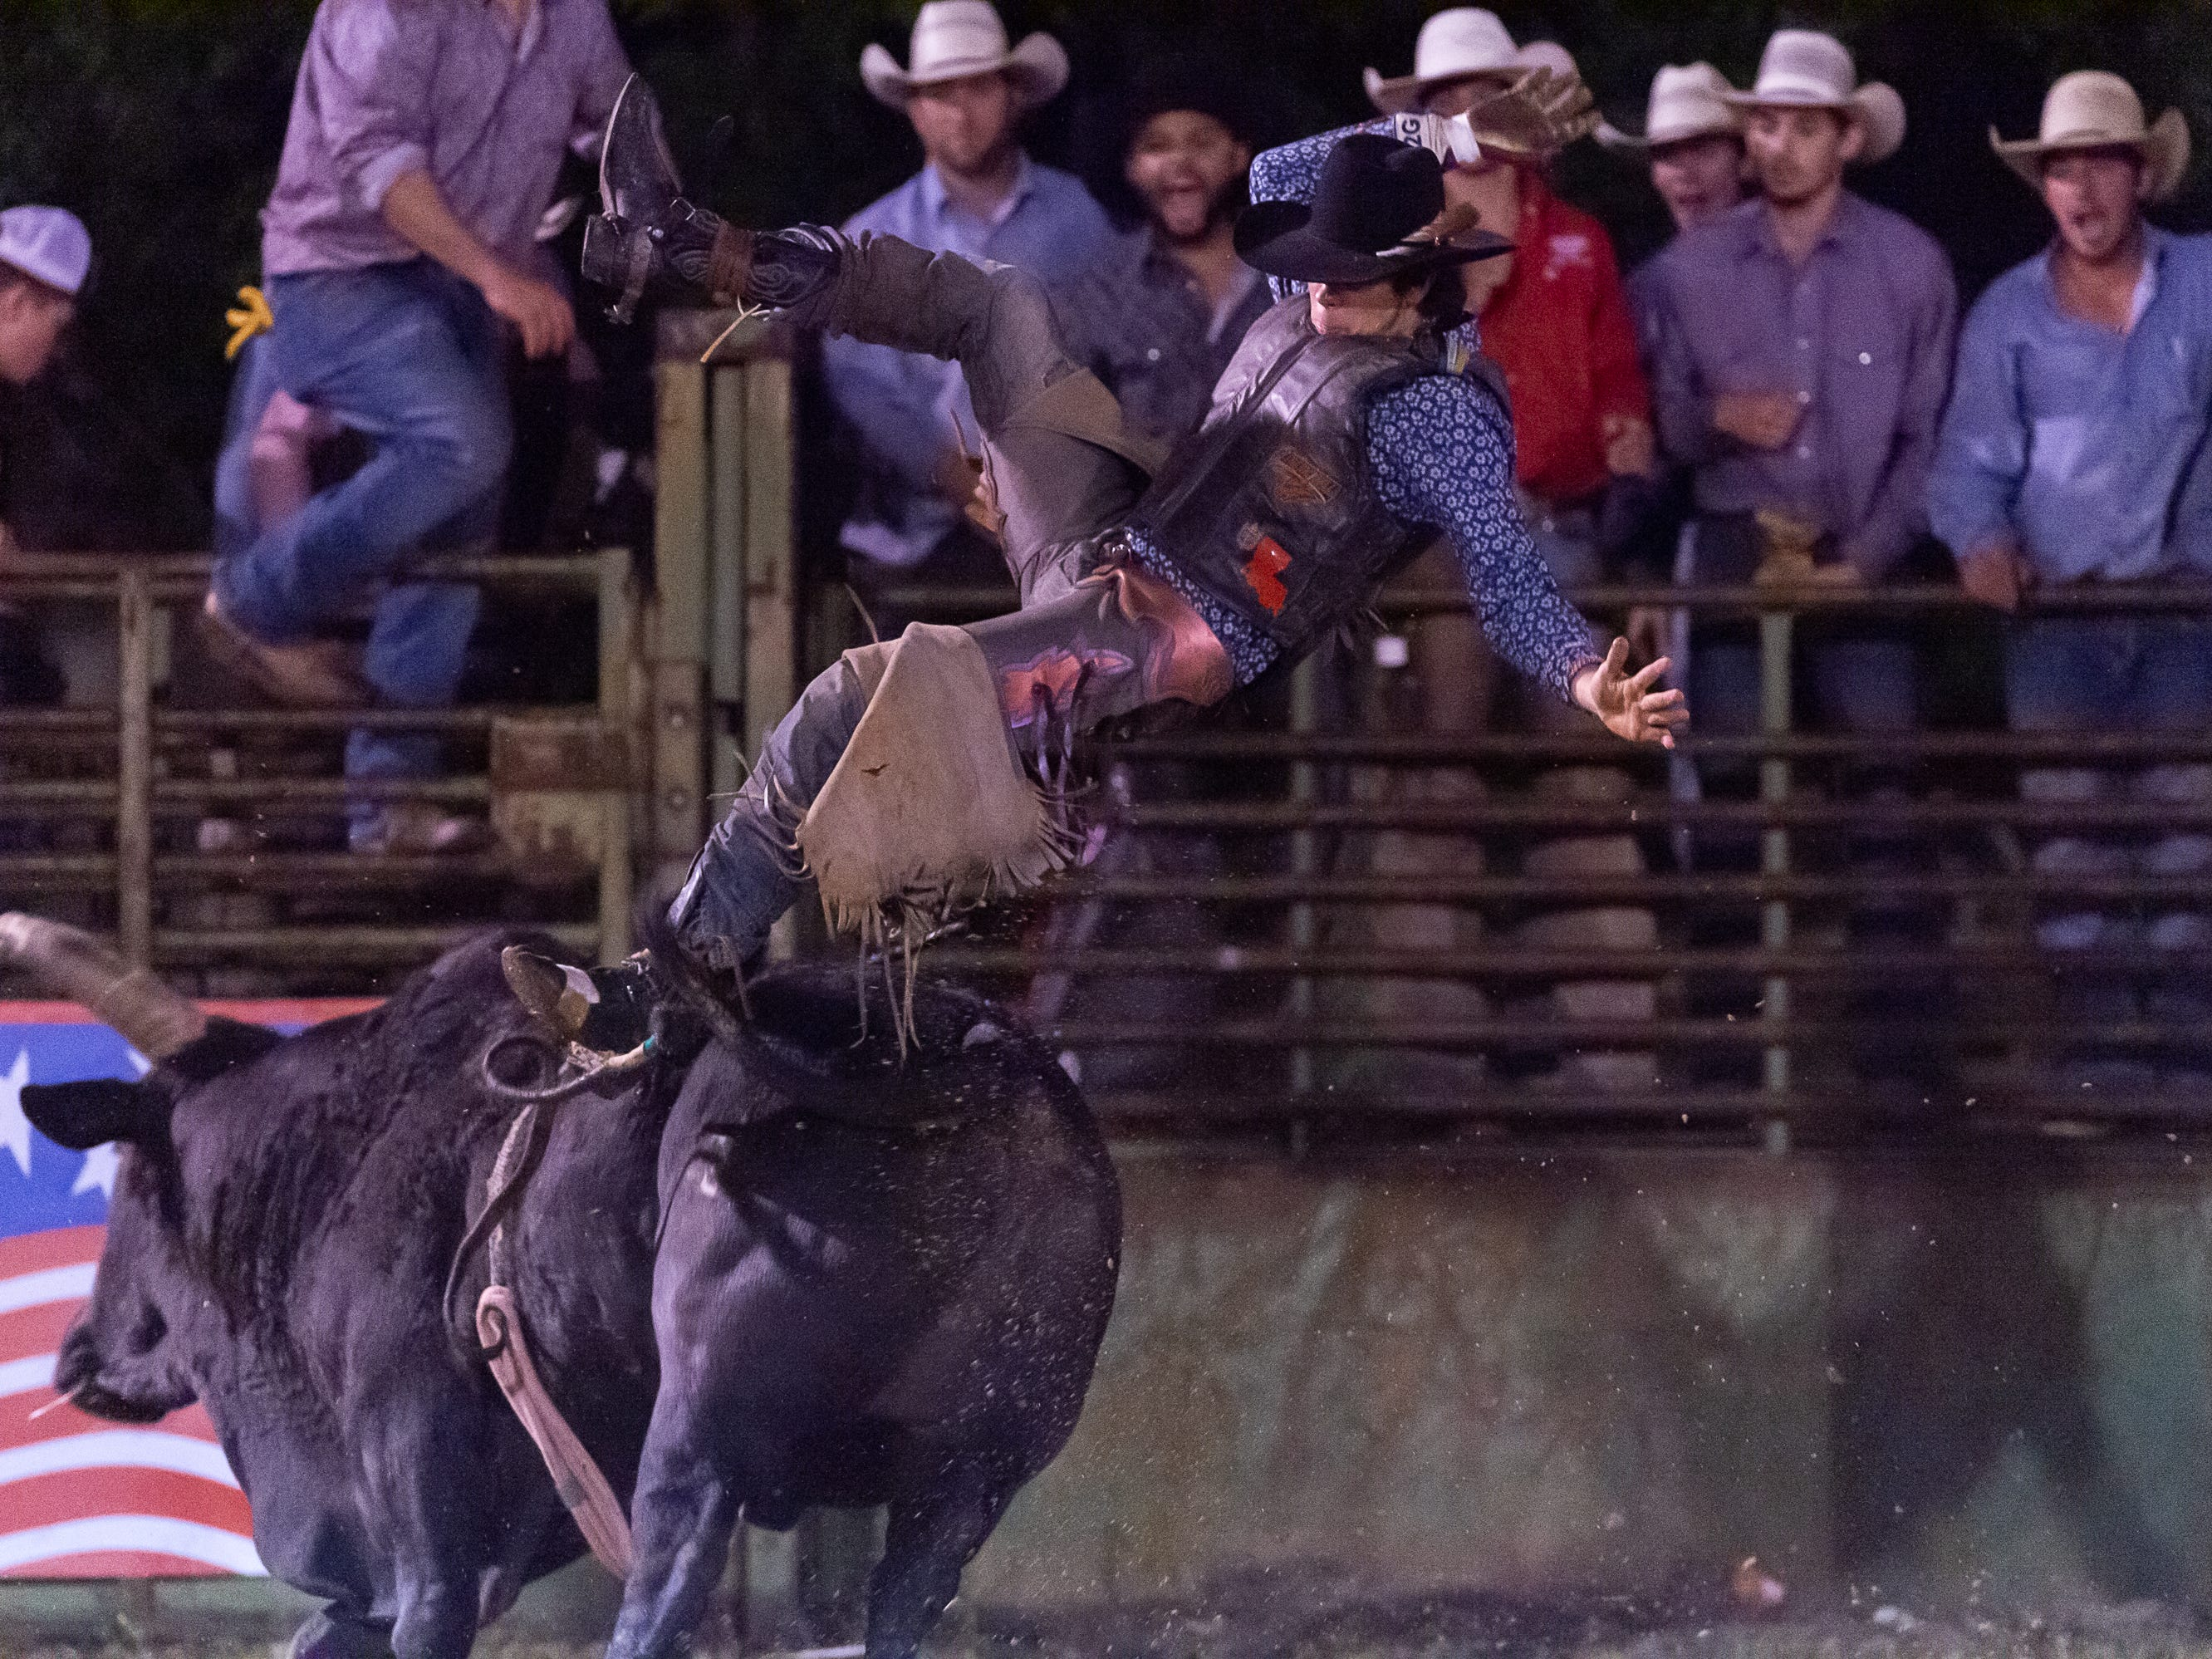 Kasen Goulas gets bucked off as the Cajun Rodeo Association host the Cowboys Spring Stampede 19 Rodeo at Cowboys Arena in Scott, LA. Saturday, April 13, 2019.